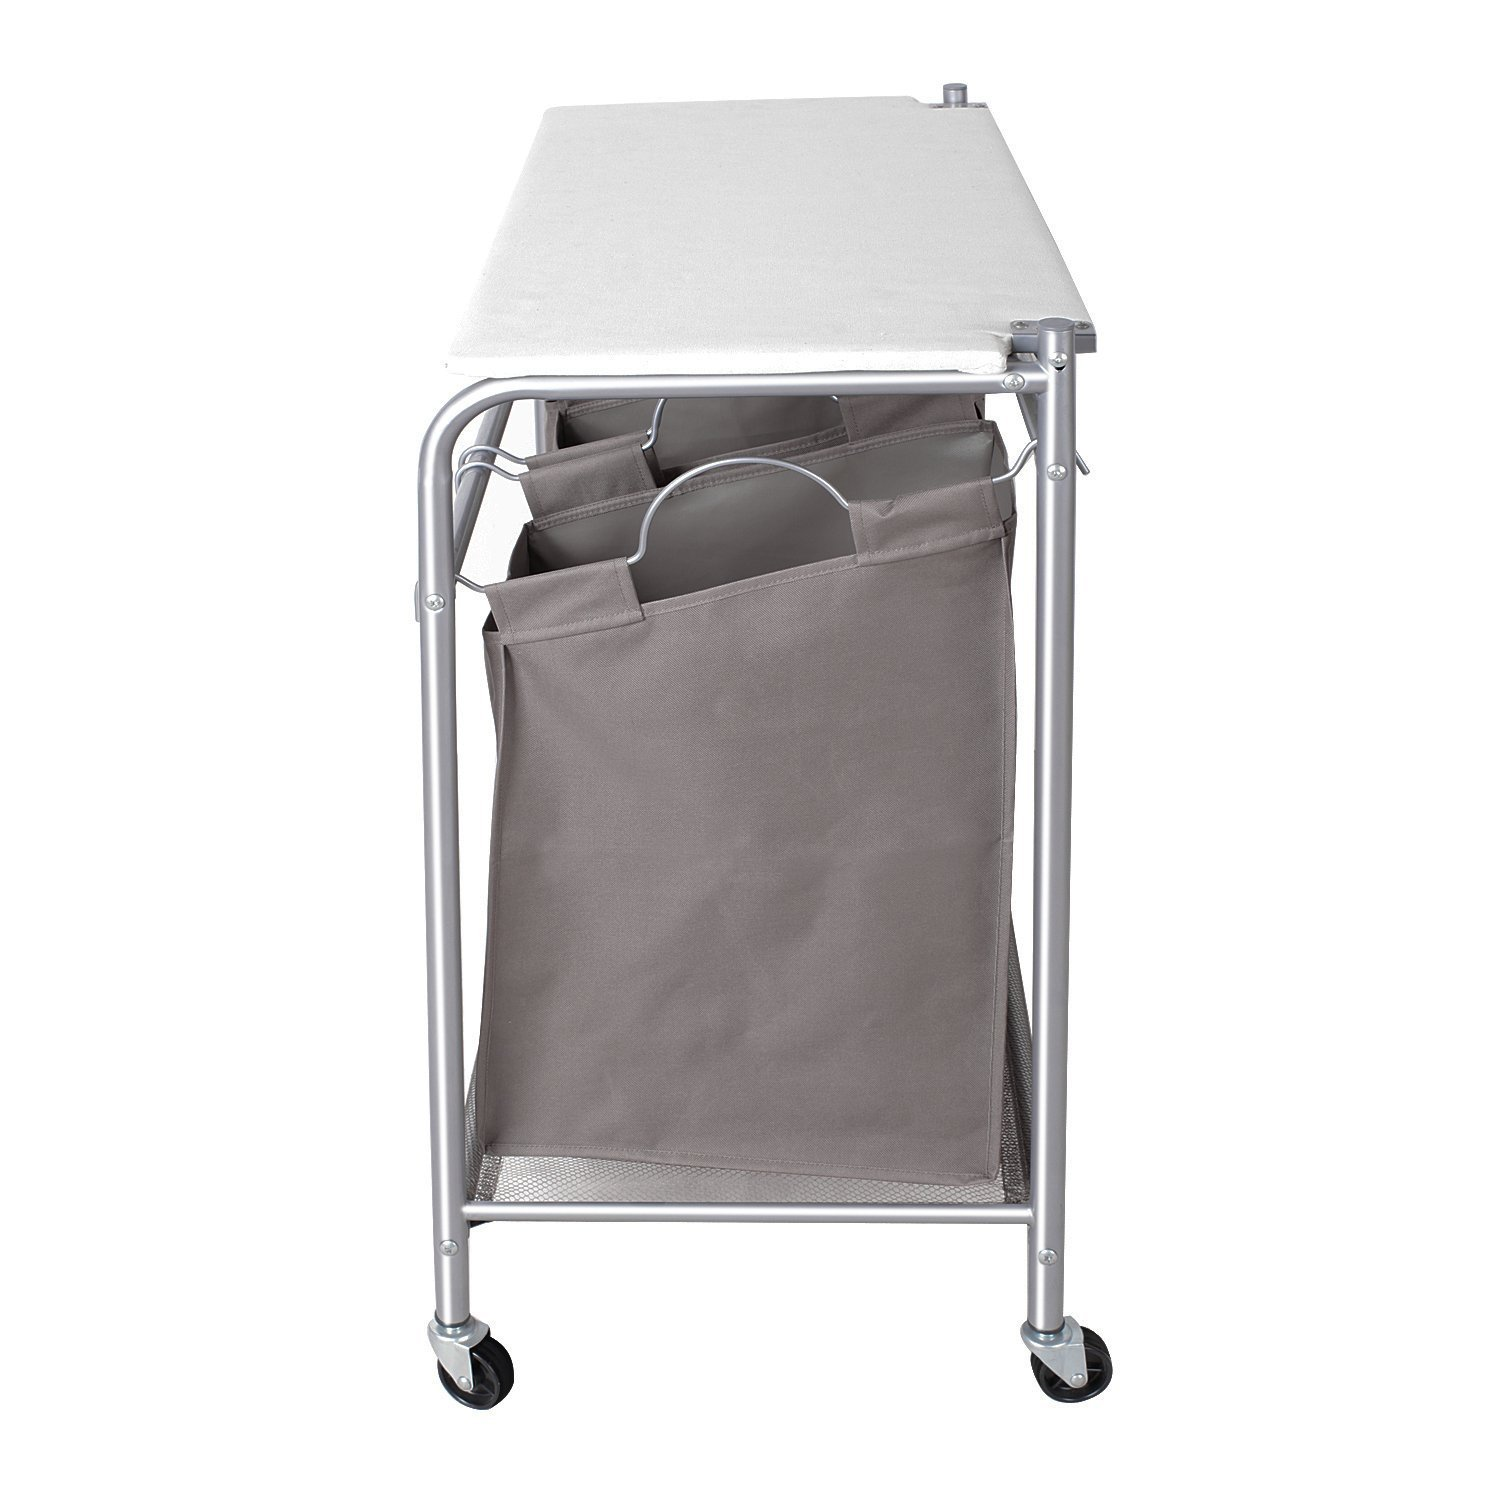 Fold up ironing board - Storagemaniac 3 Lift Off Bags Laundry Sorter Cart With Foldable Ironing Board